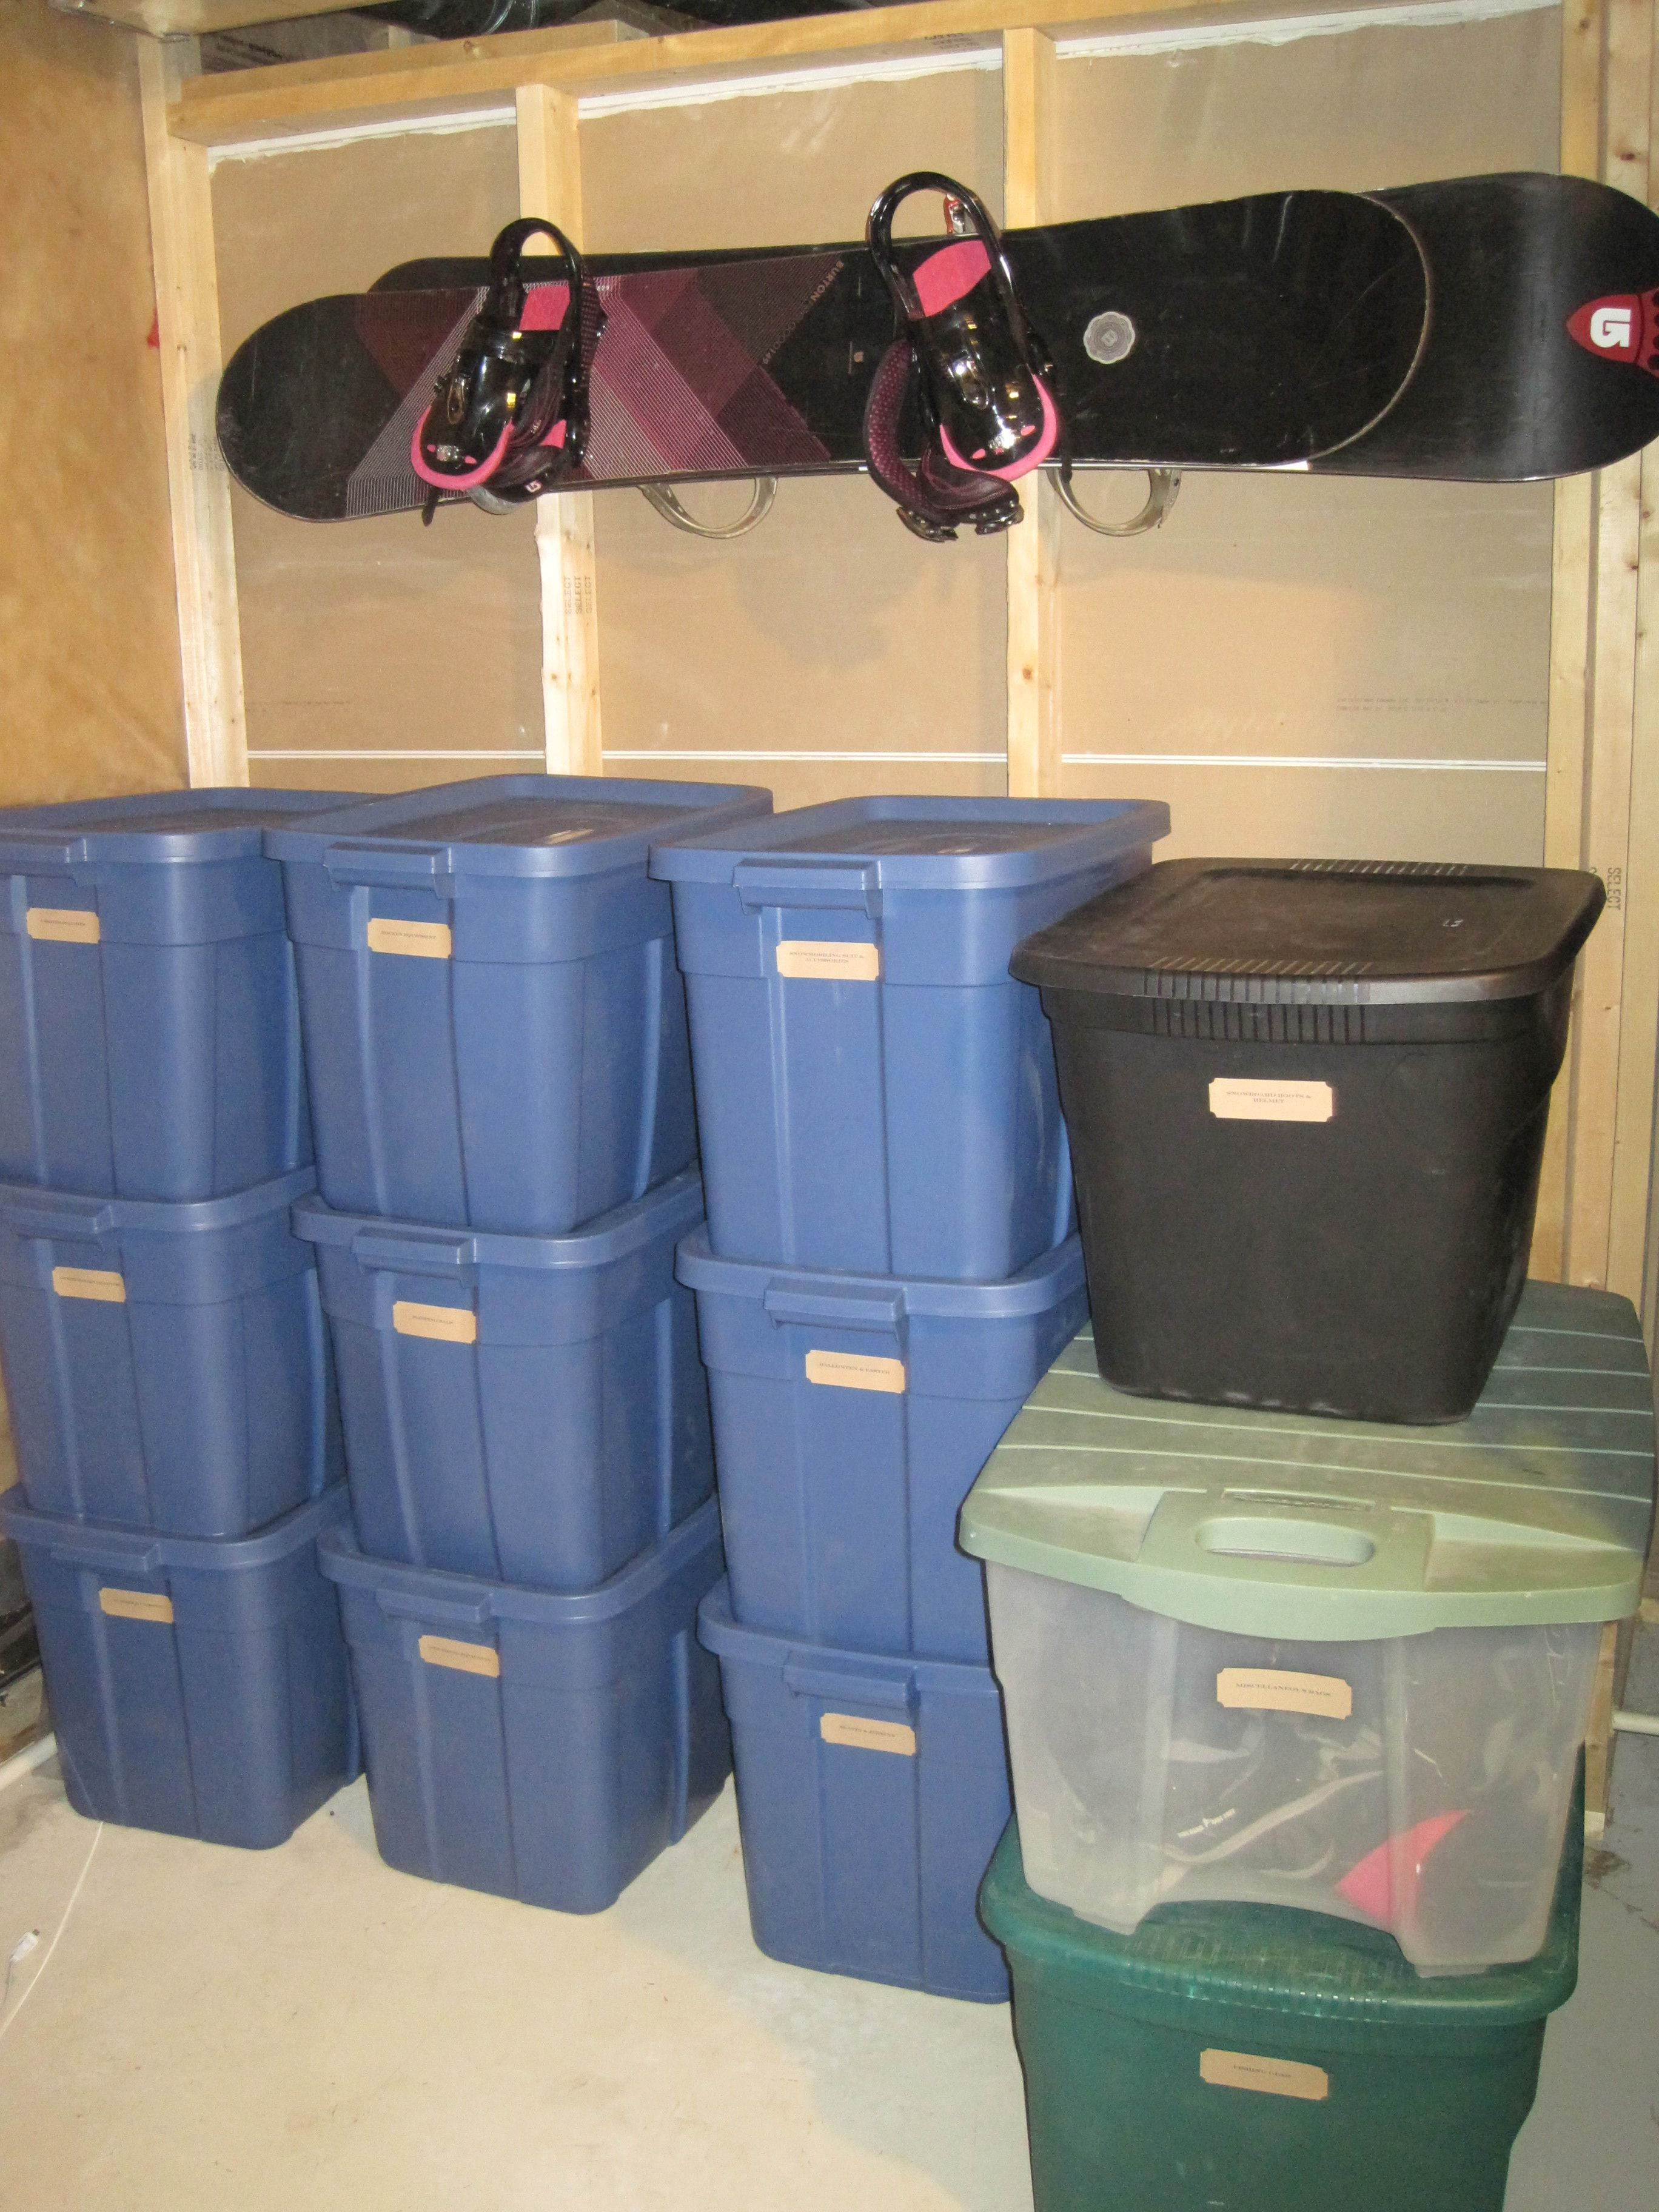 My furnace room project for Christmas Vacation Used Rubbermaid